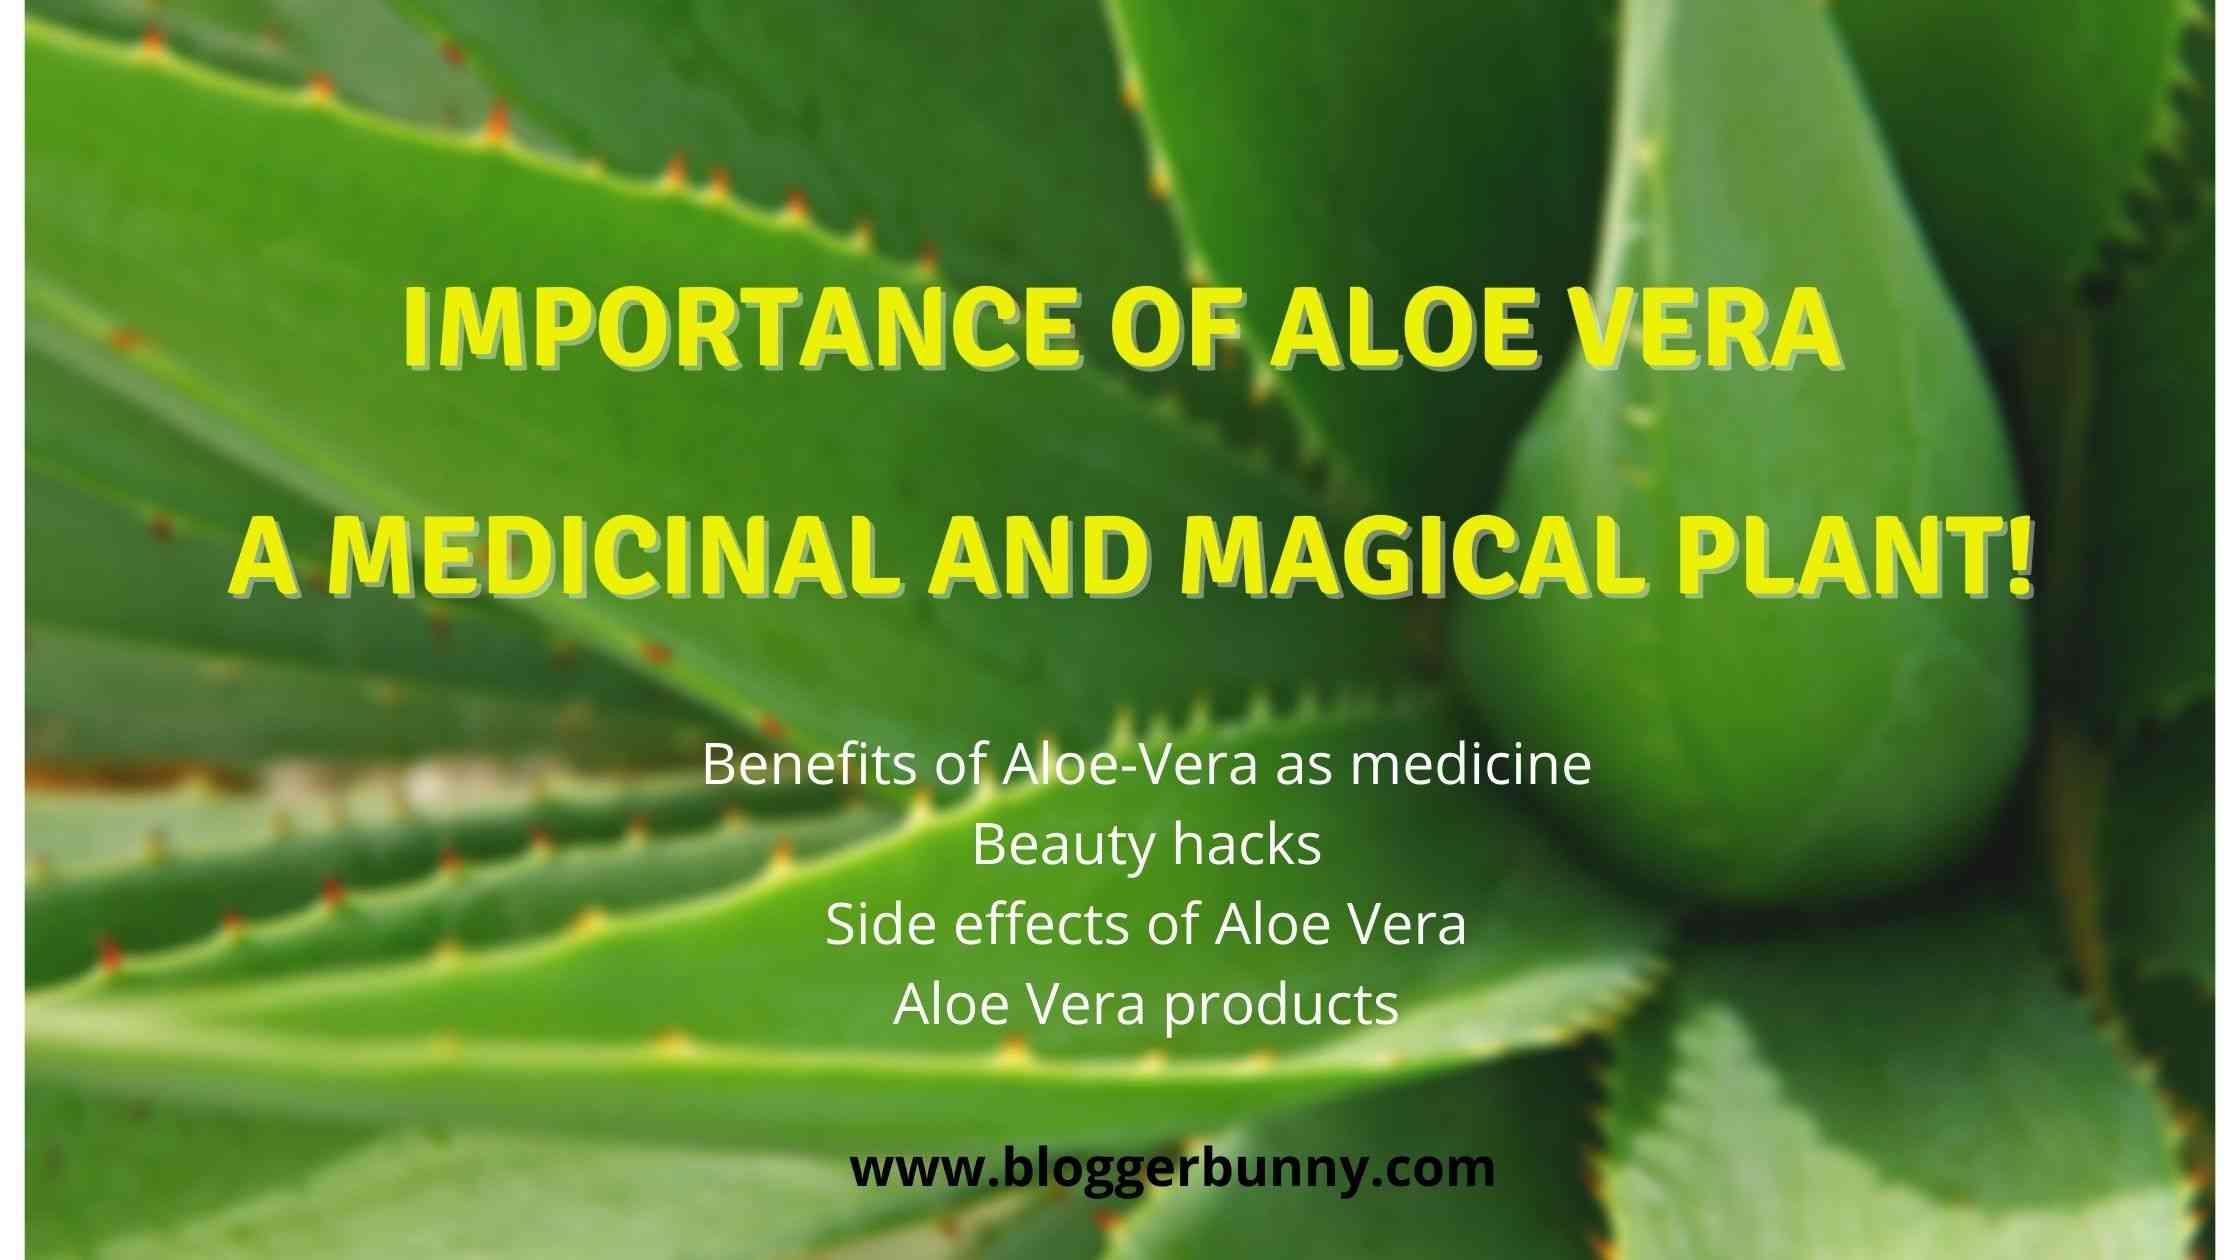 Importance of Aloe Vera – A Medicinal And Magical Plant!